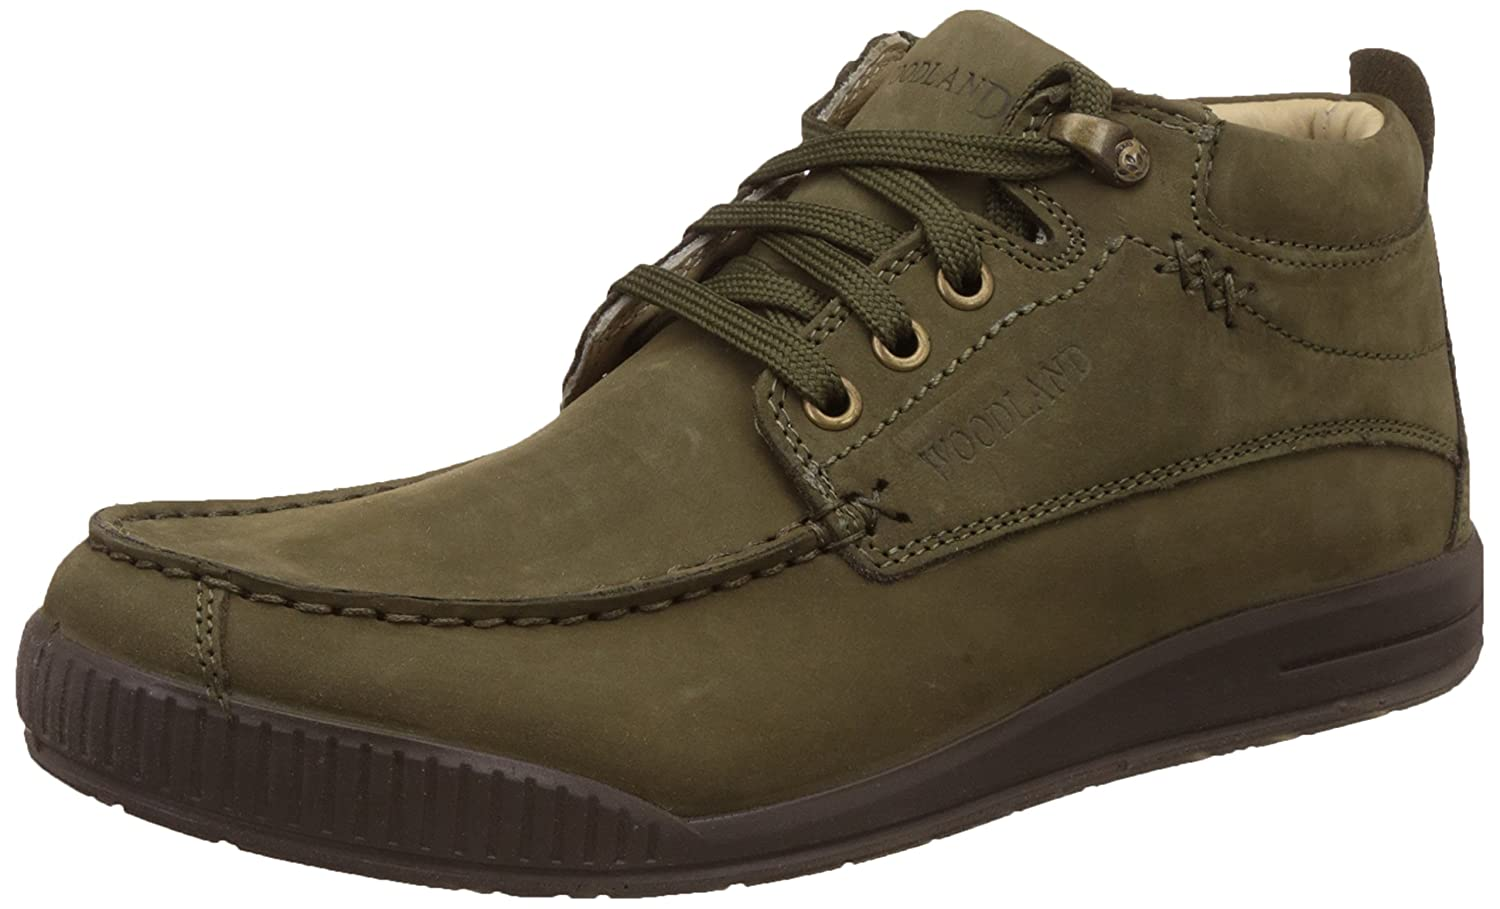 Olive Green Nubuck Leather Sneakers